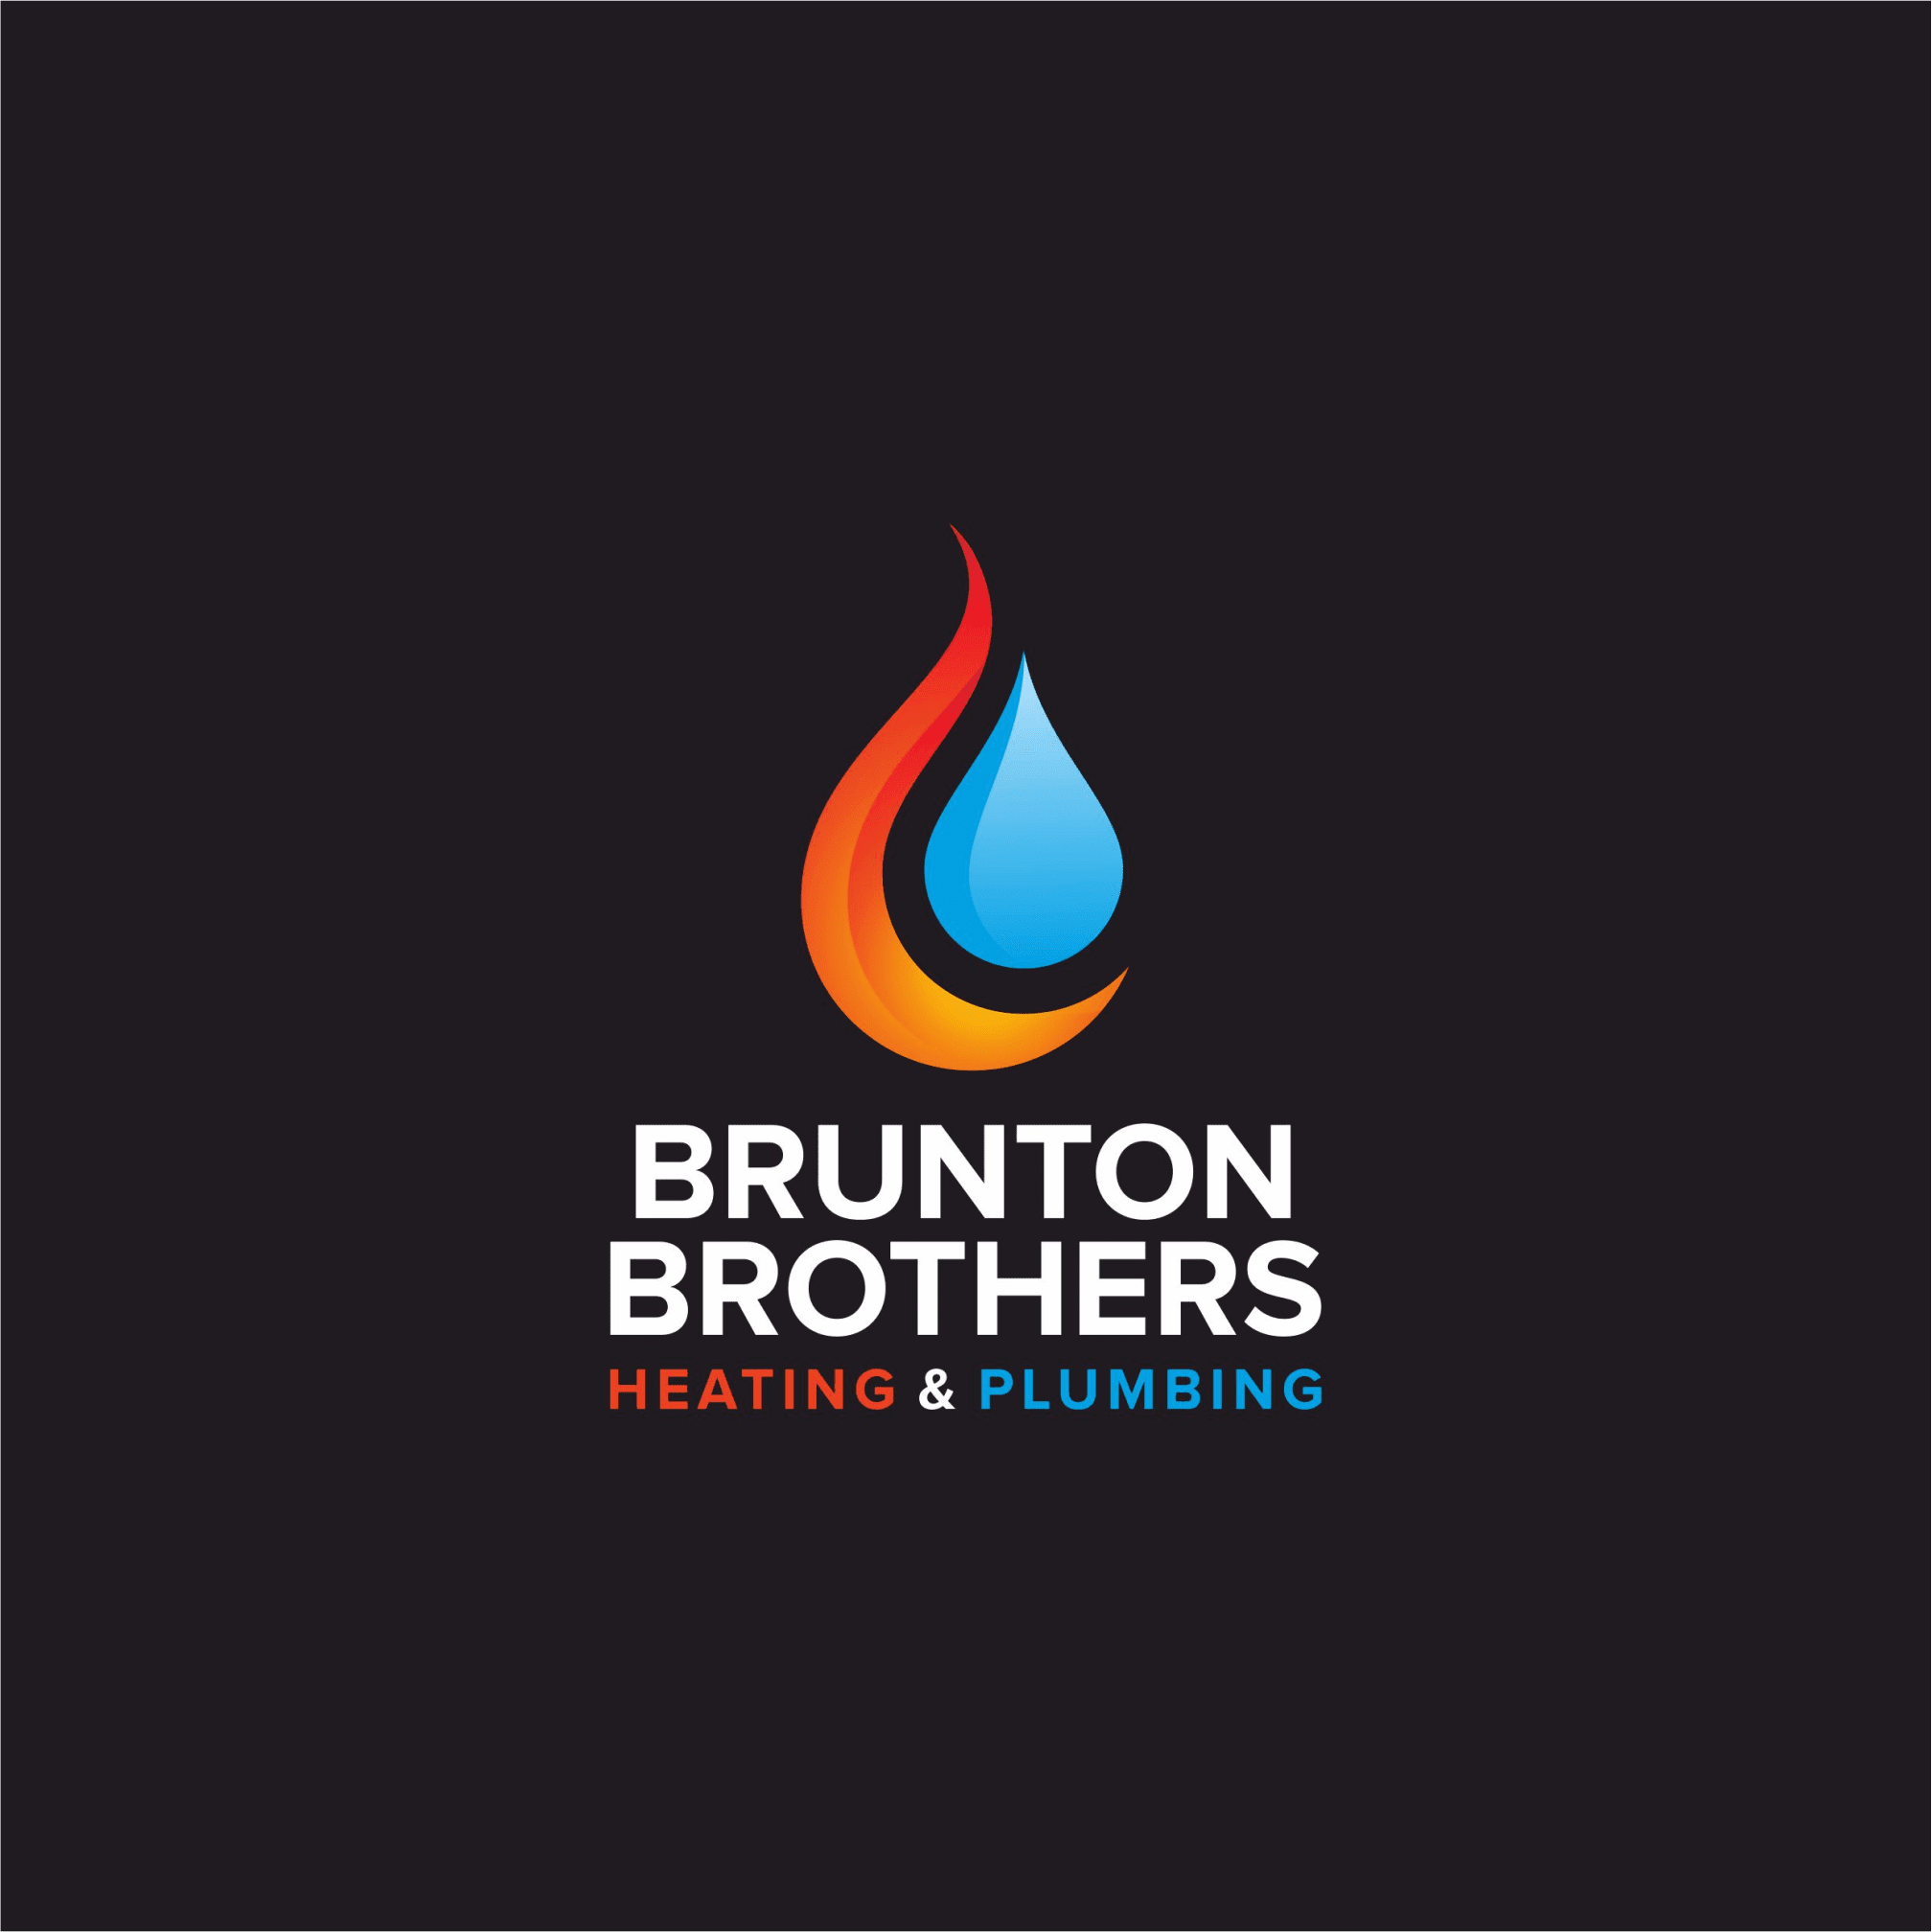 Brunton Brothers Heating & Plumbing - Stockport, Cheshire SK5 7SZ - 07792 084993 | ShowMeLocal.com